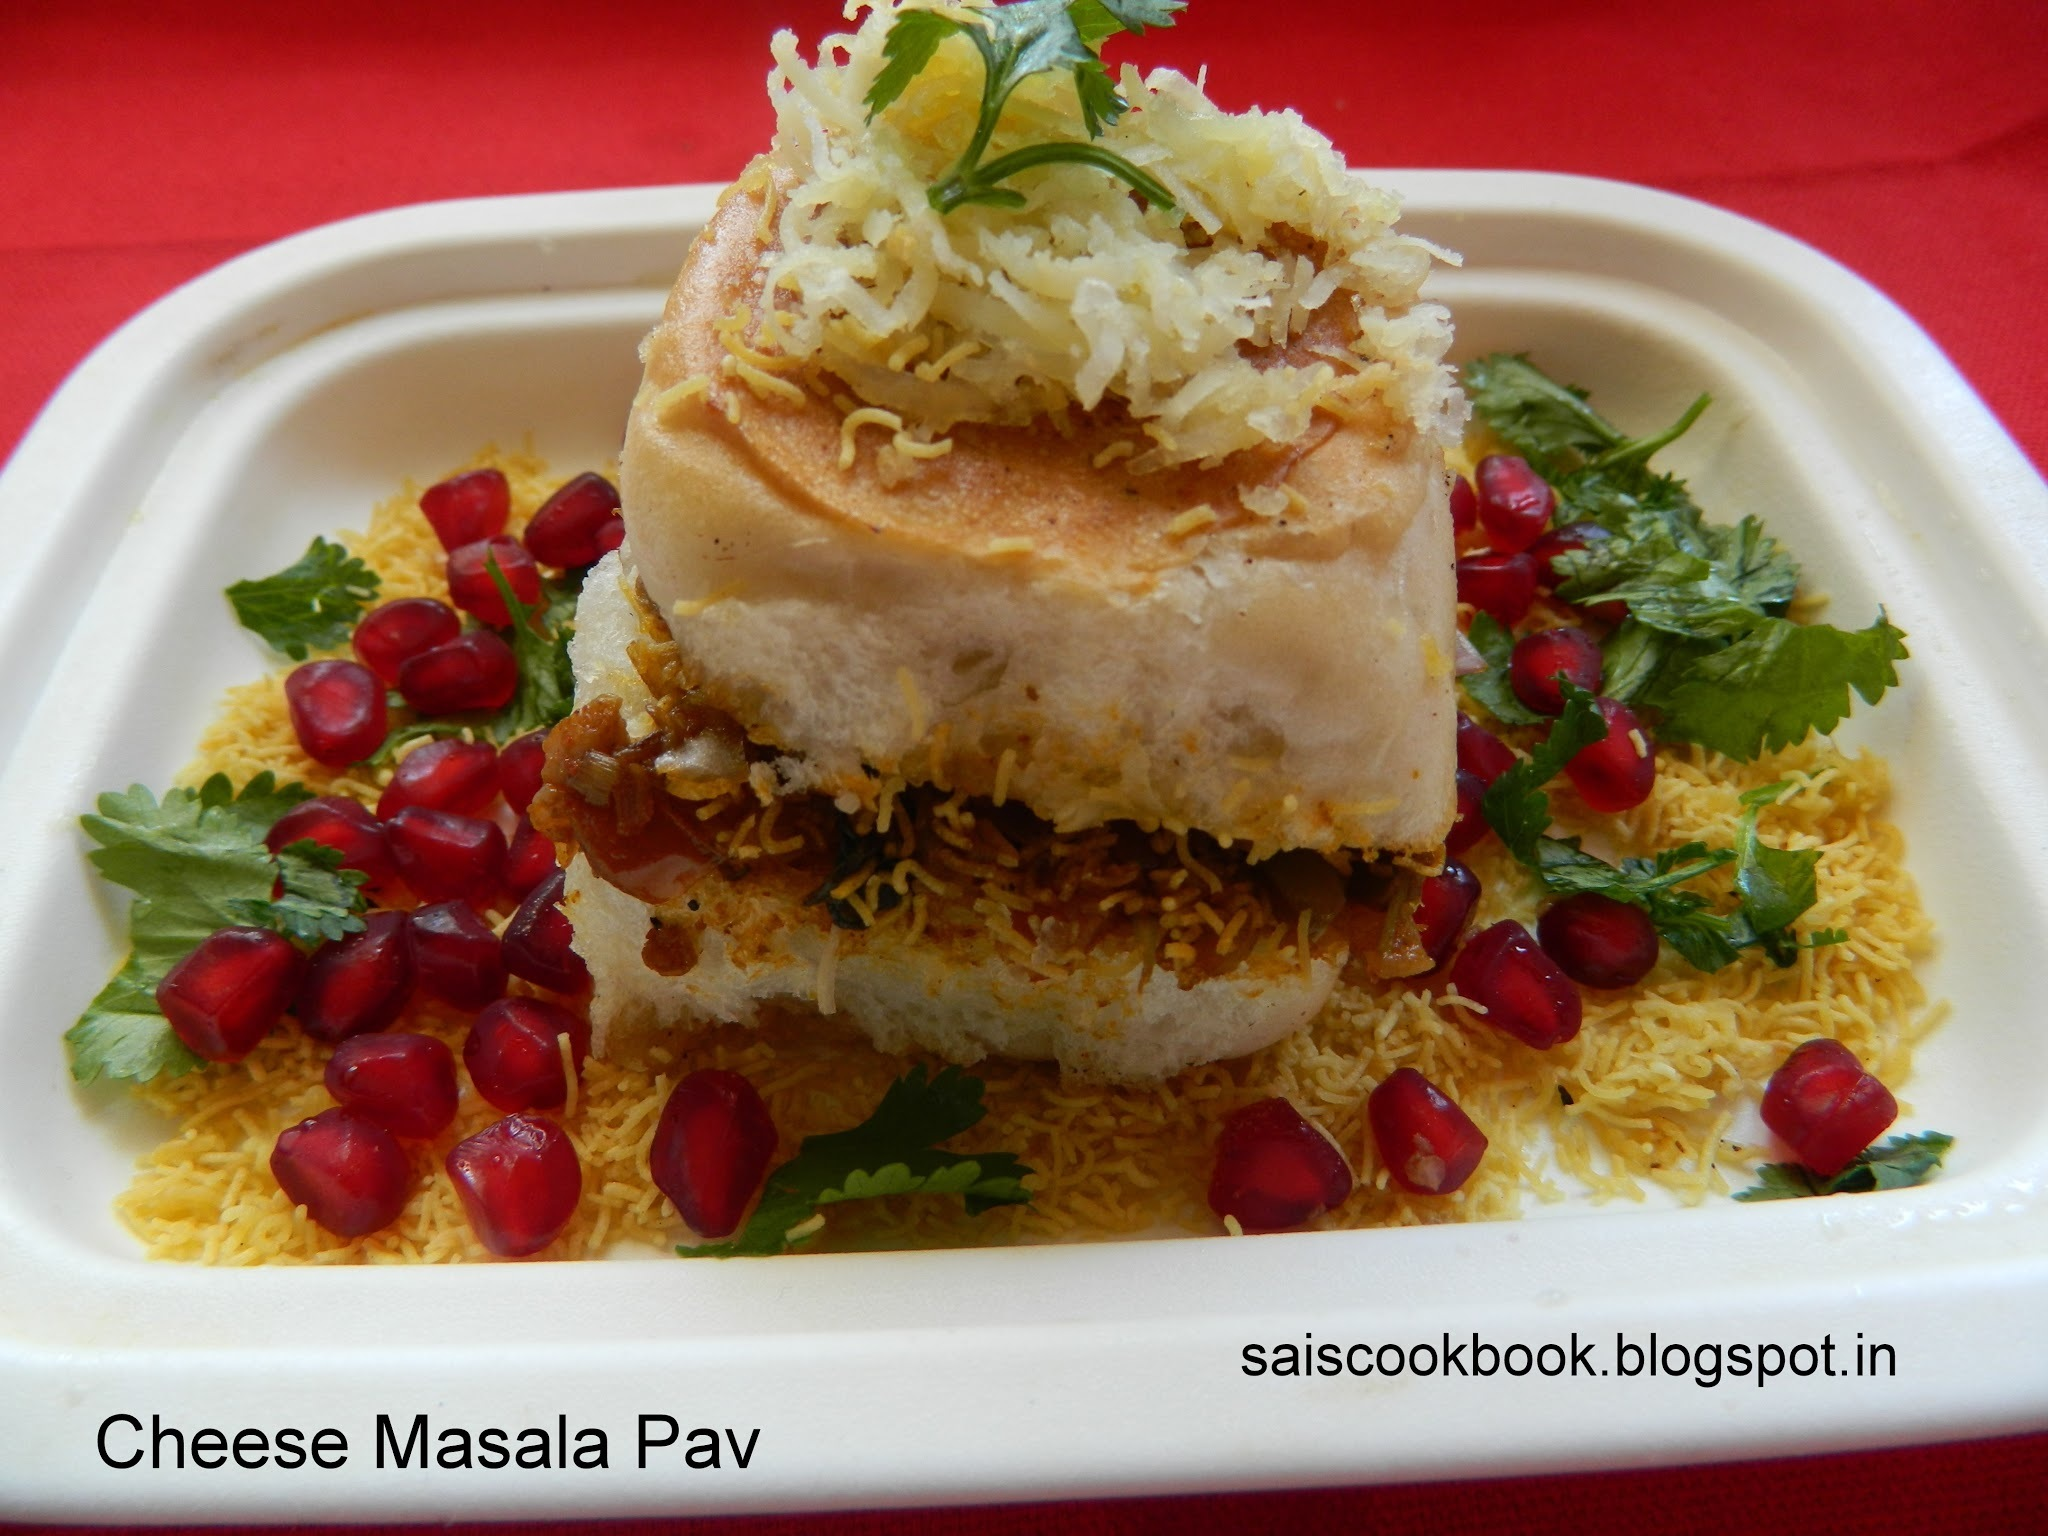 Cheese Masala Pav,A popular street food of Mumbai